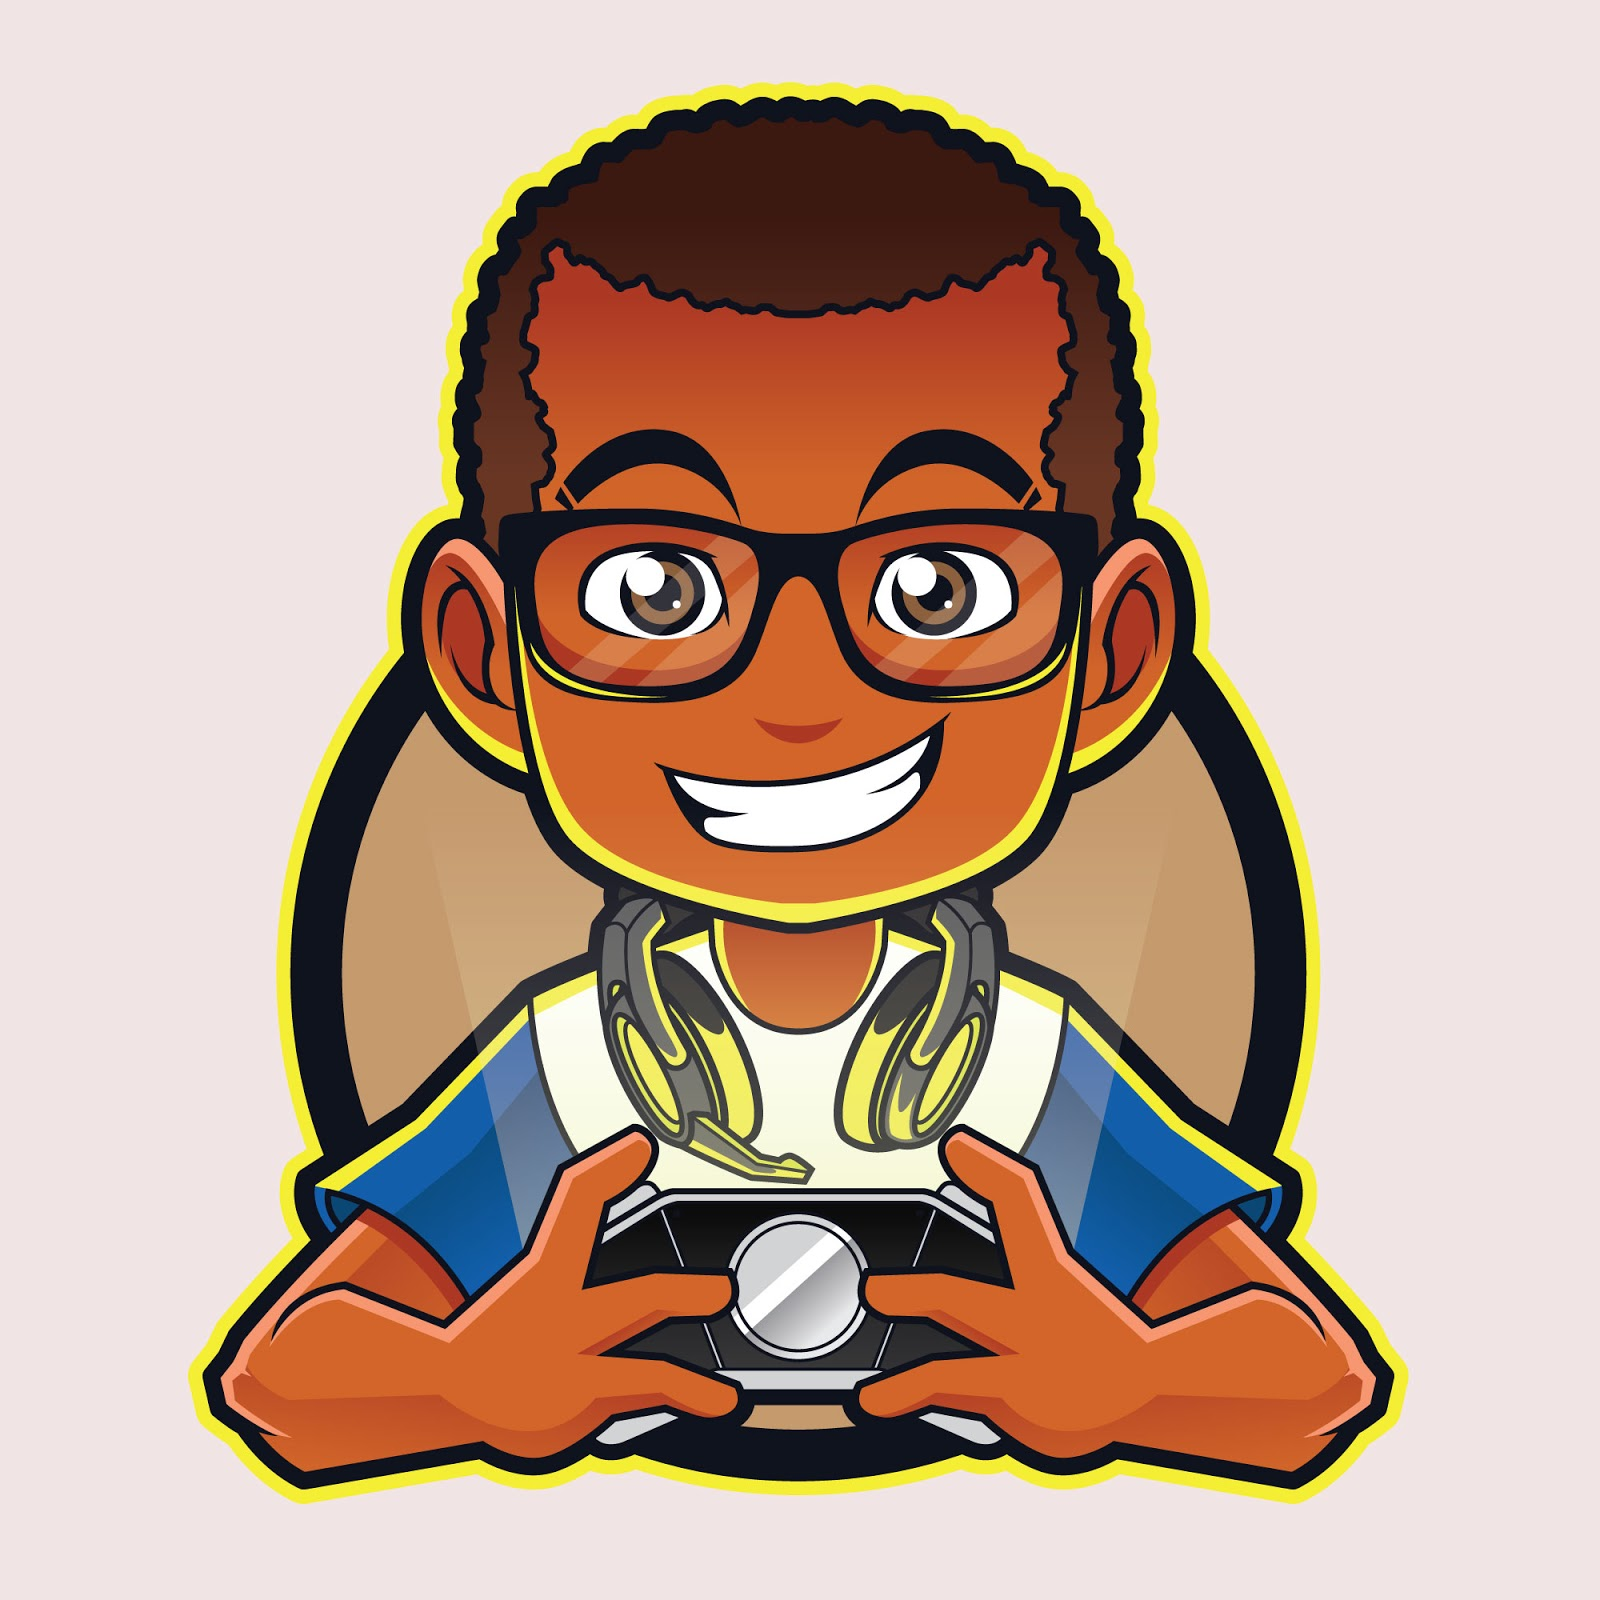 Gamer Boy Mascot Free Download Vector CDR, AI, EPS and PNG Formats